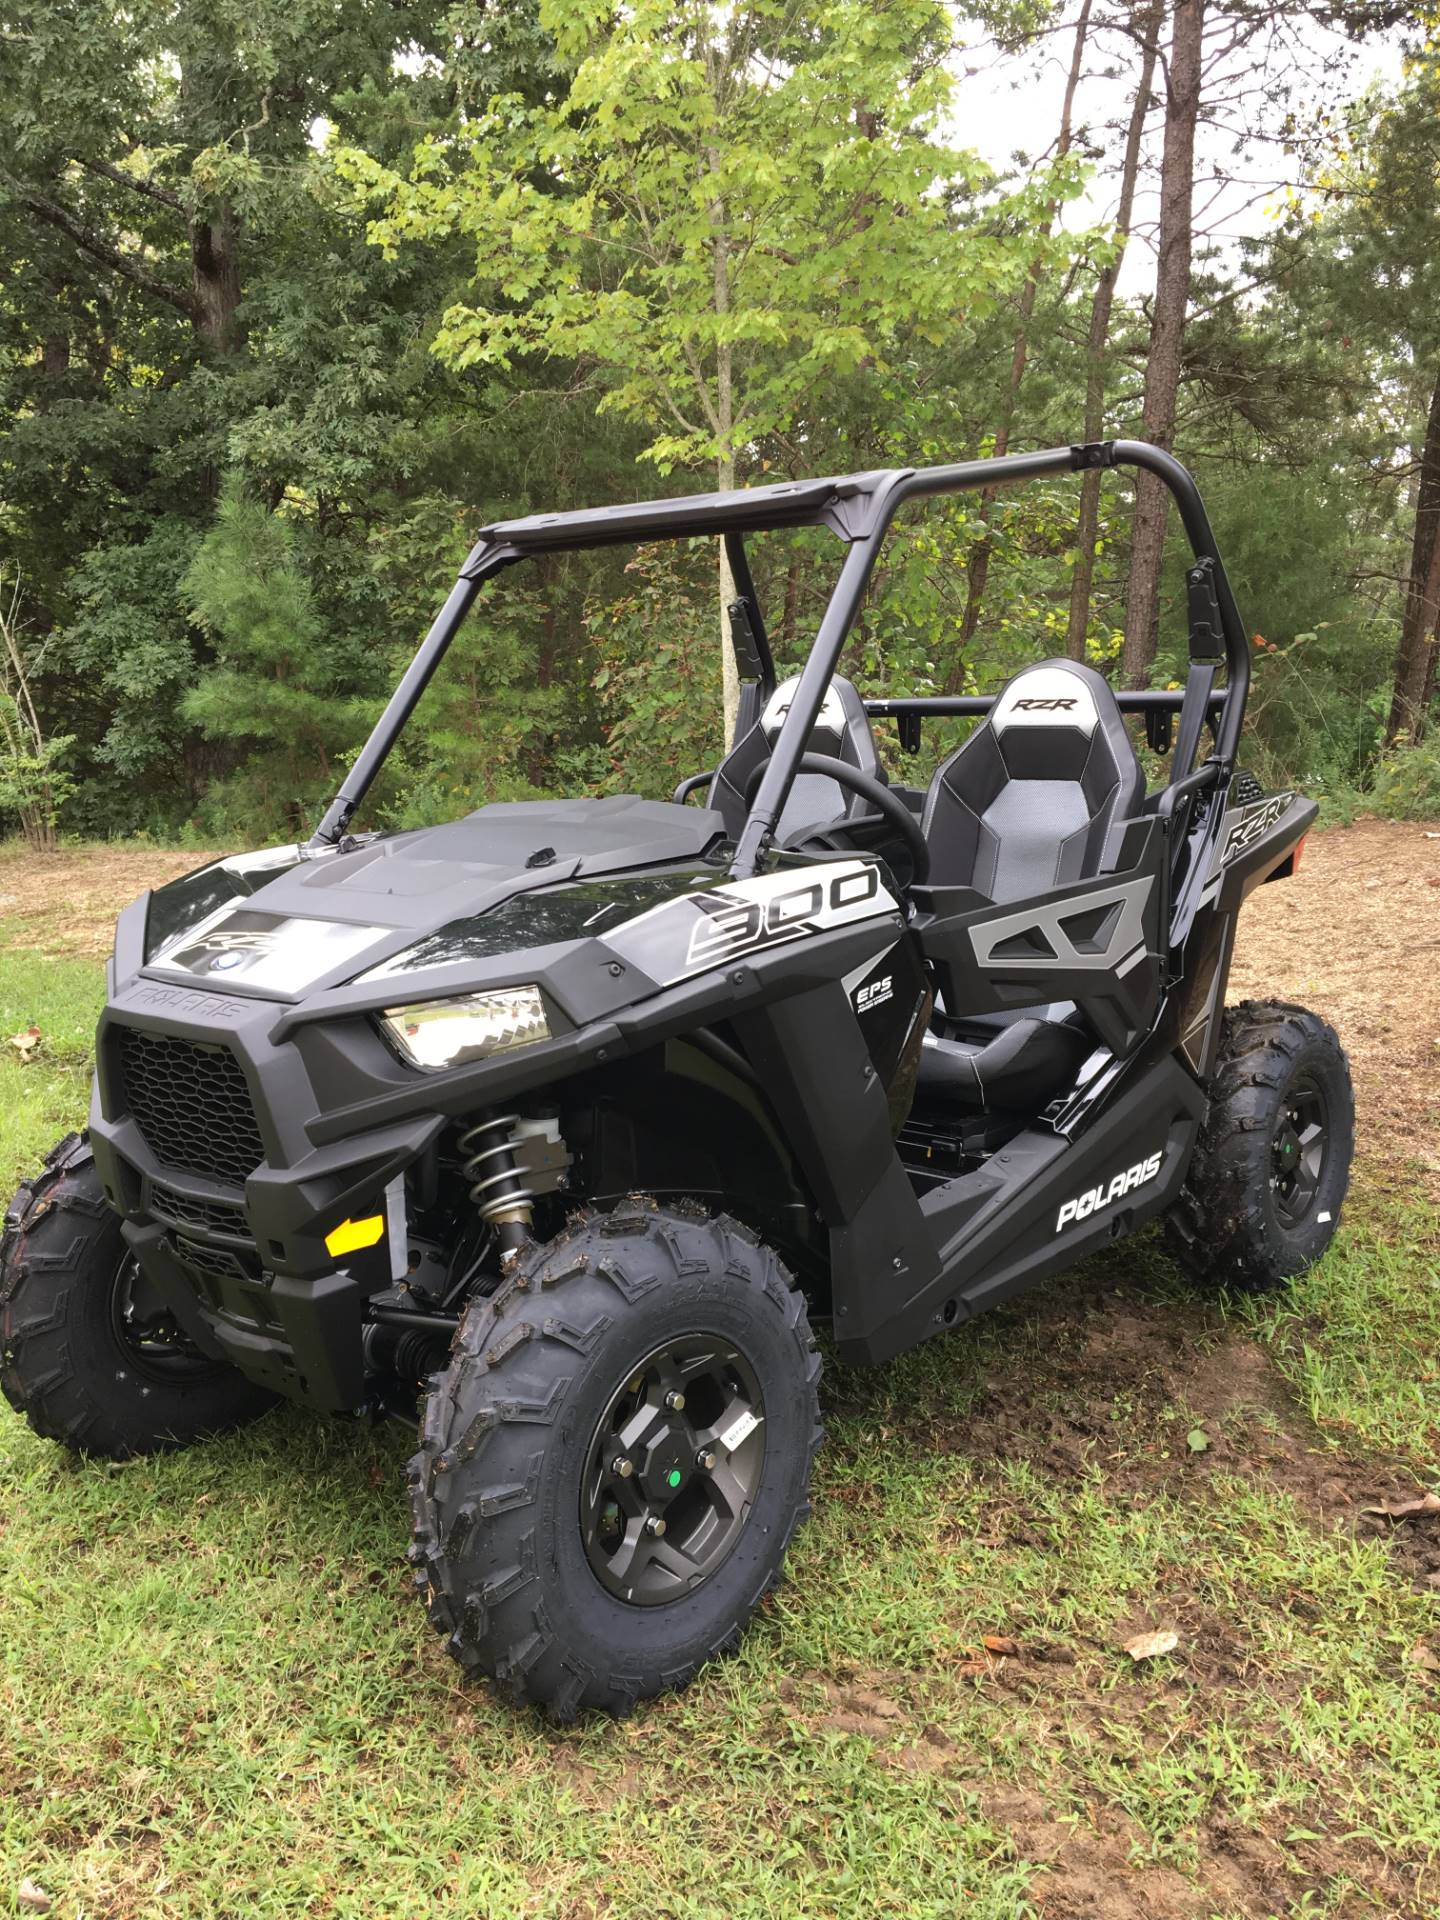 2019 Polaris RZR 900 EPS in High Point, North Carolina - Photo 1